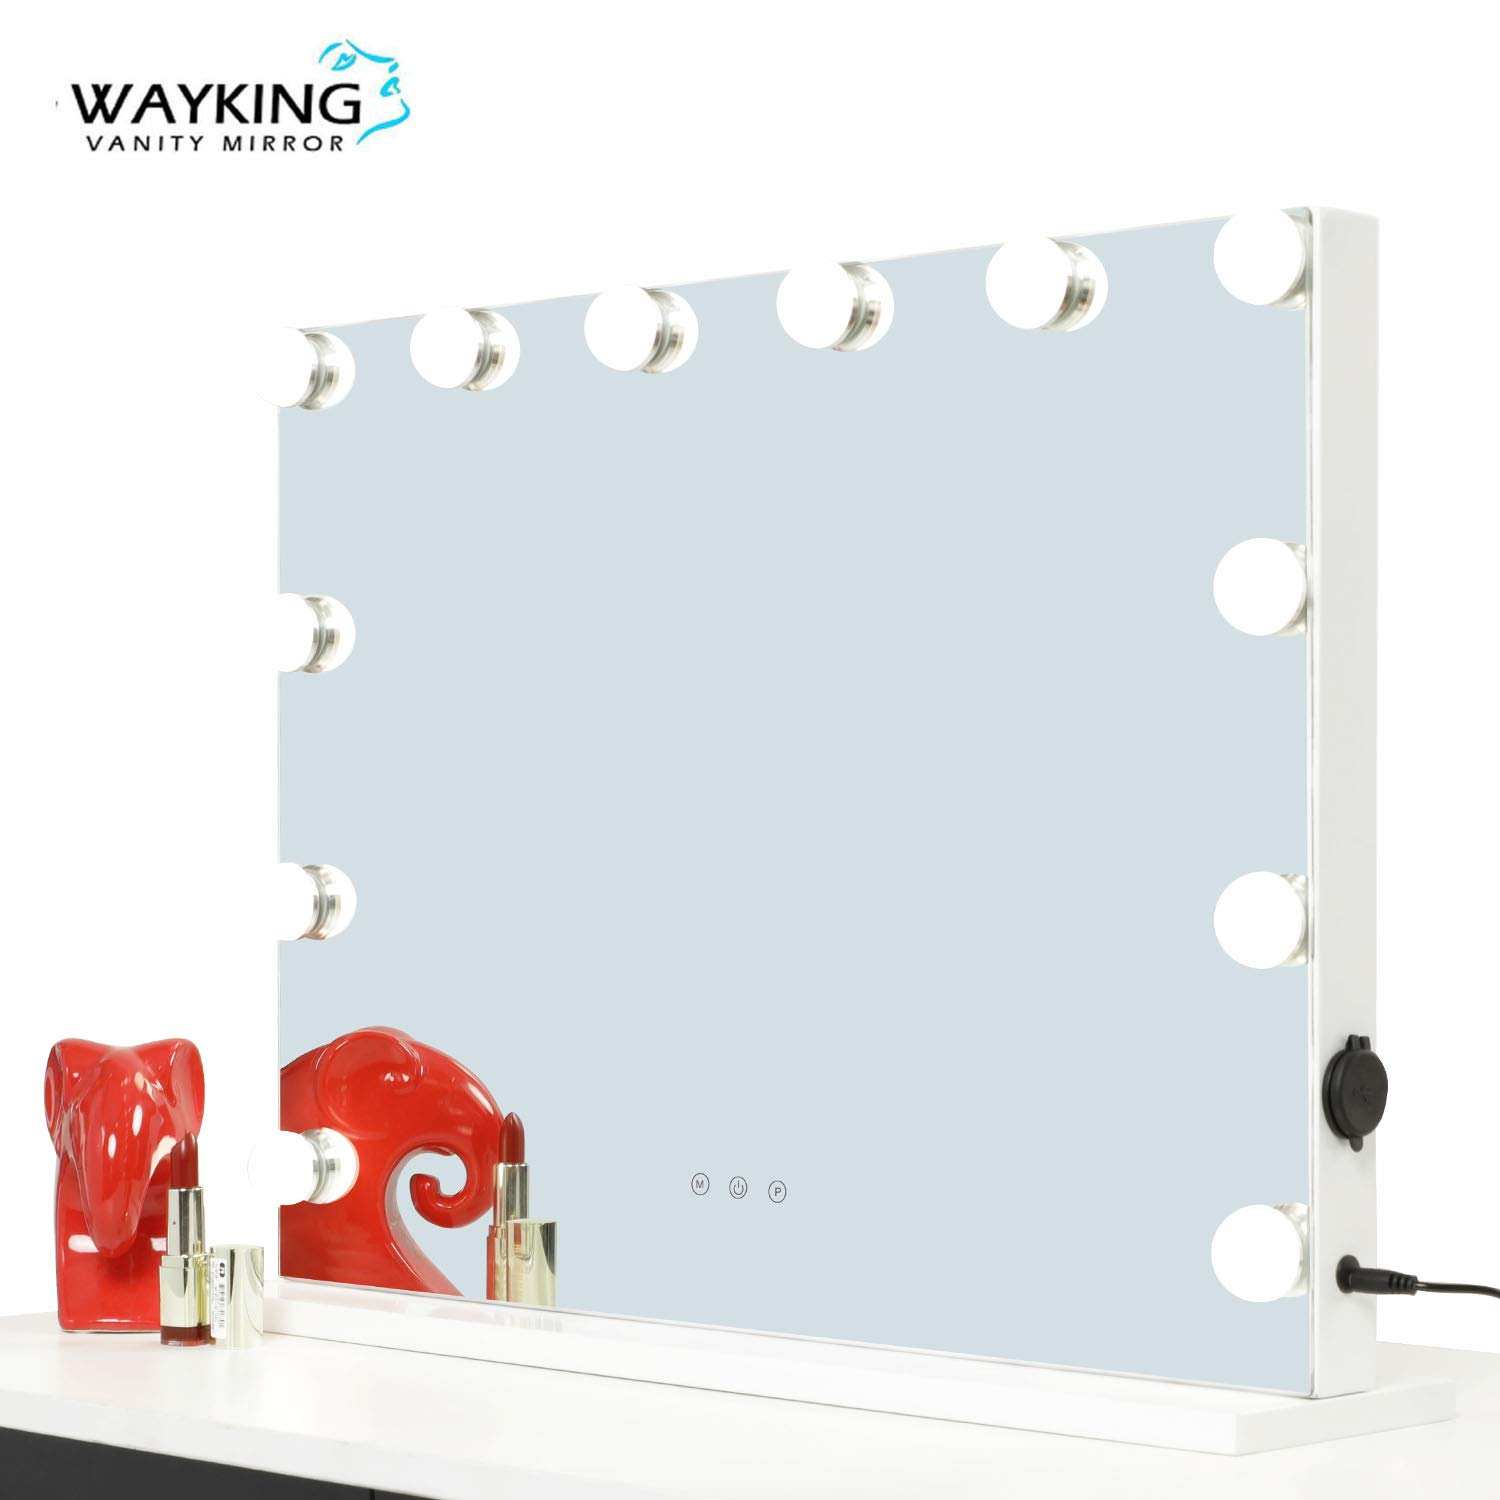 WAYKING Vanity Mirror With Lights, Lighted Makeup Mirror with LED Bulbs, USB and Touch Switch, Light up Mirror for Home(White, 22.8''X18.9'')